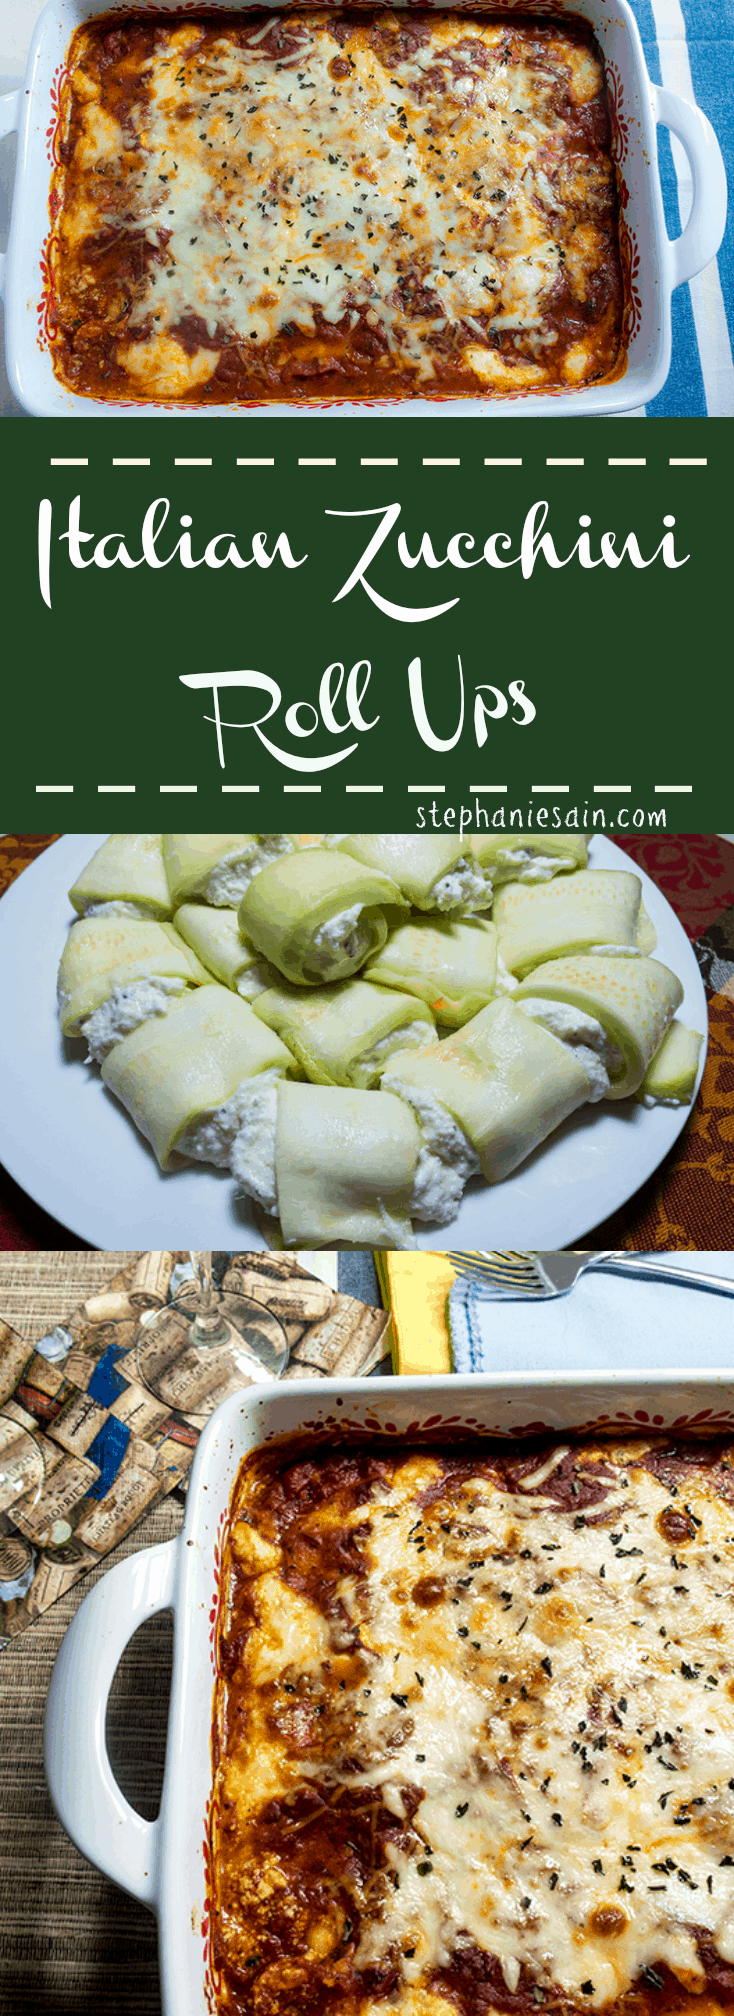 Italian Zucchini Roll ups are a healthy, tasty, option for lasagna that are vegetarian and gluten free